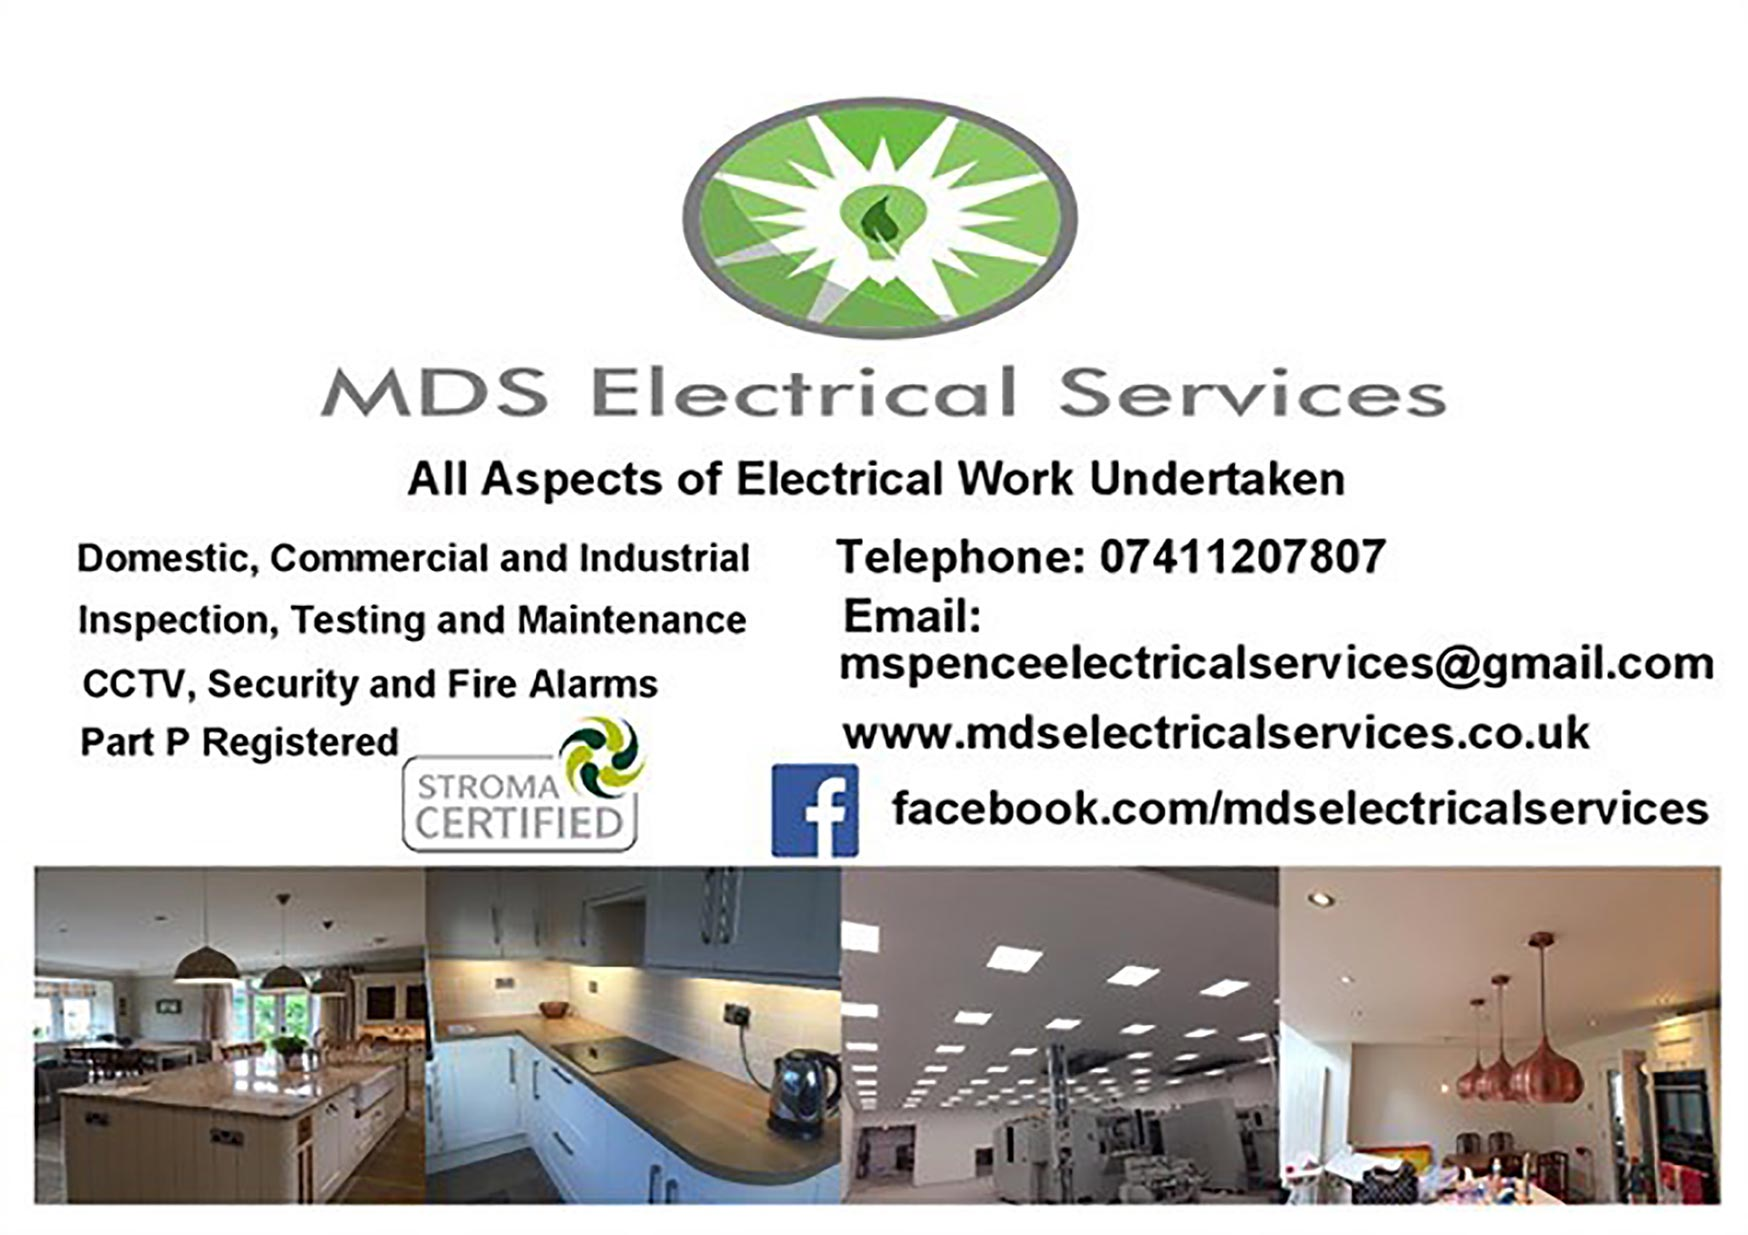 MDS Electrical Services